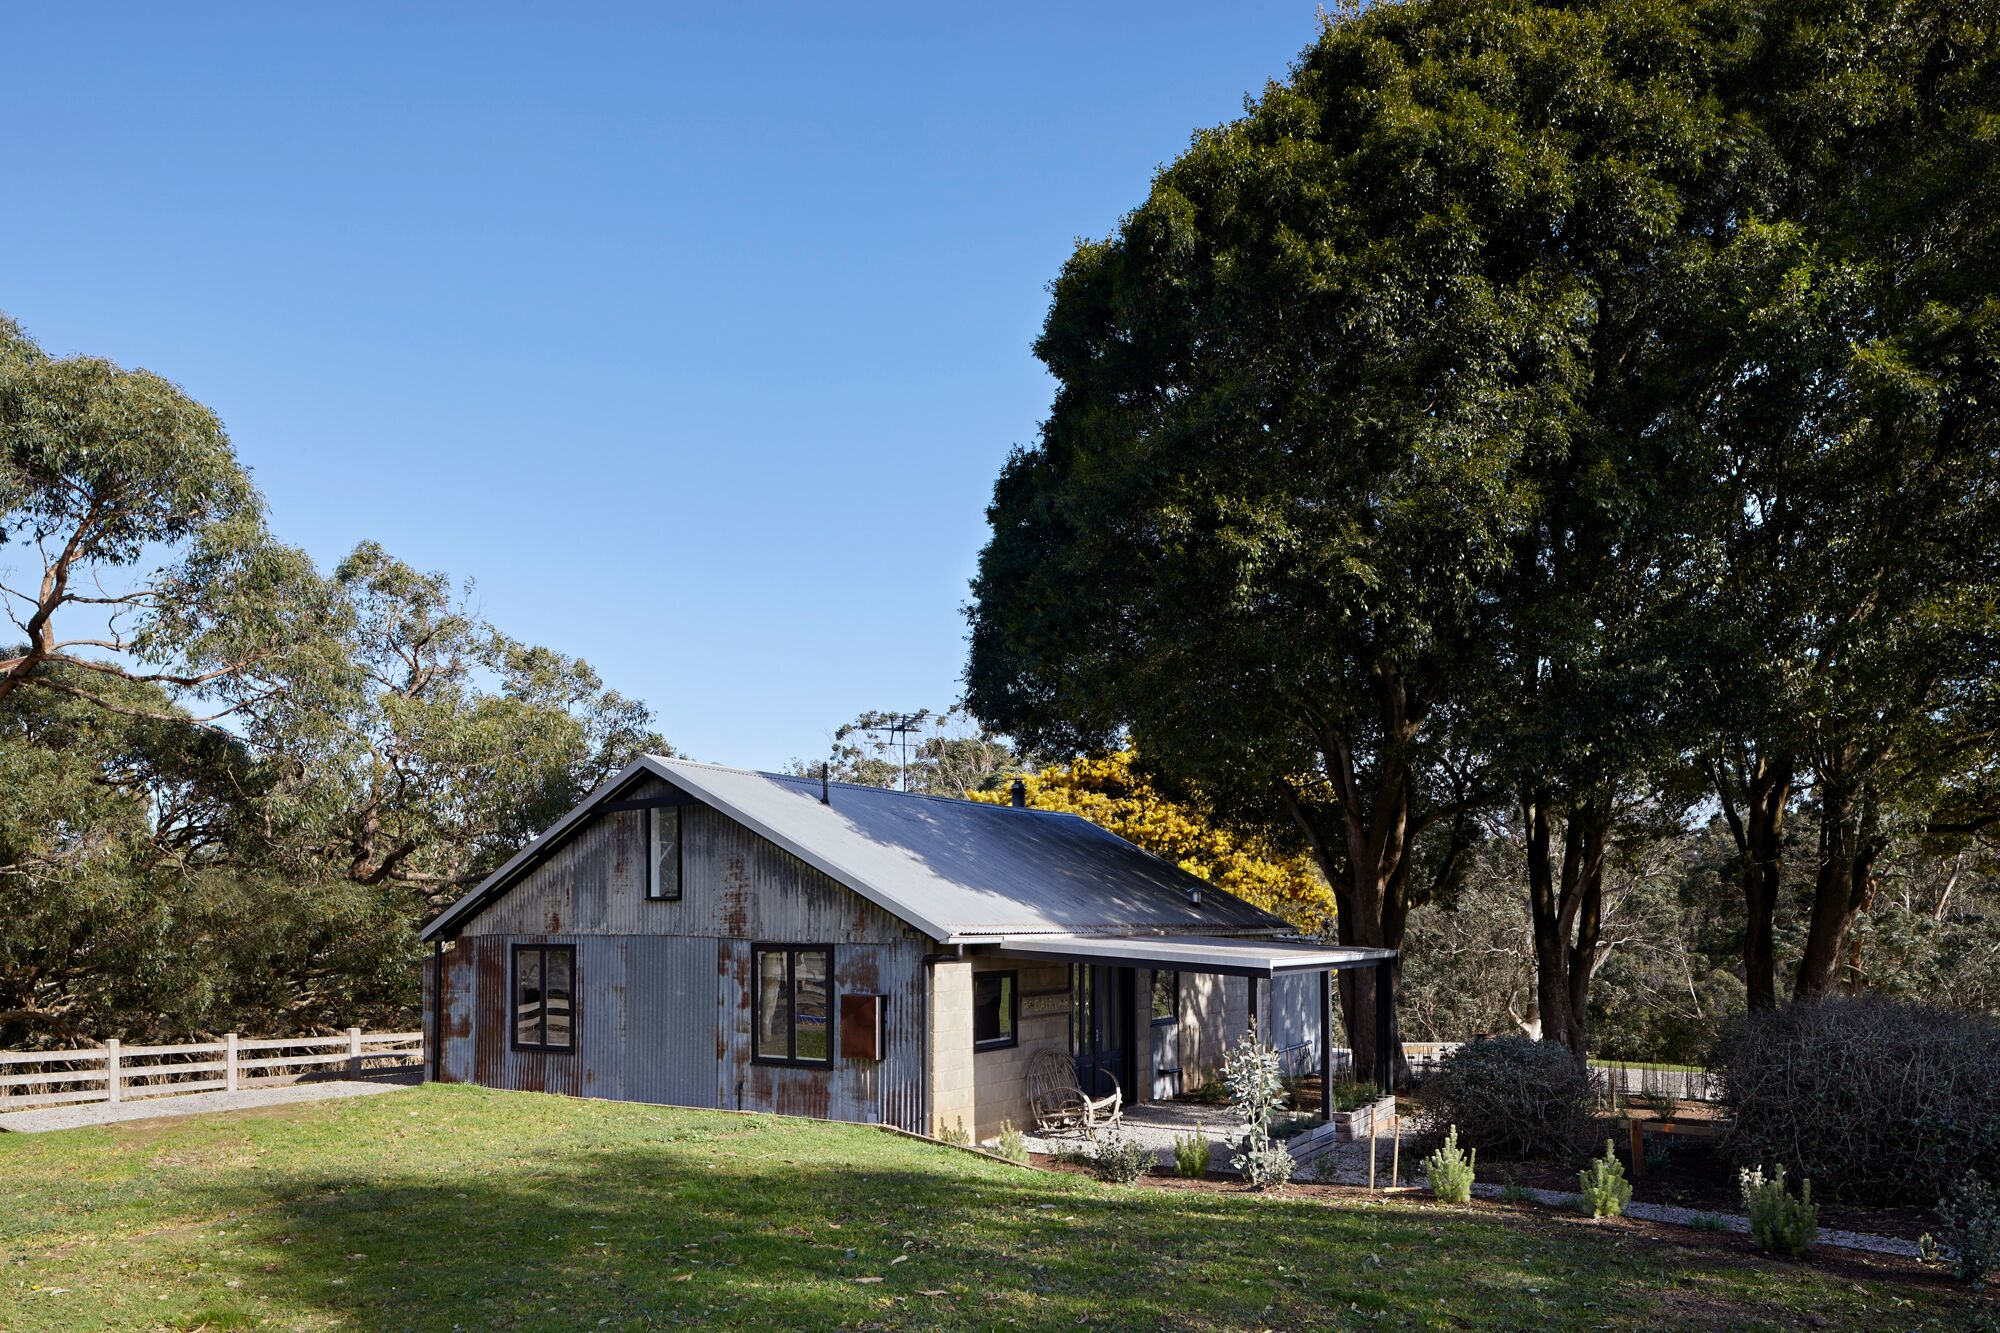 Gallery Of Firewood & Candles Local Australian Residential Architecture And Interior Design Main Ridge, Vic Image 11